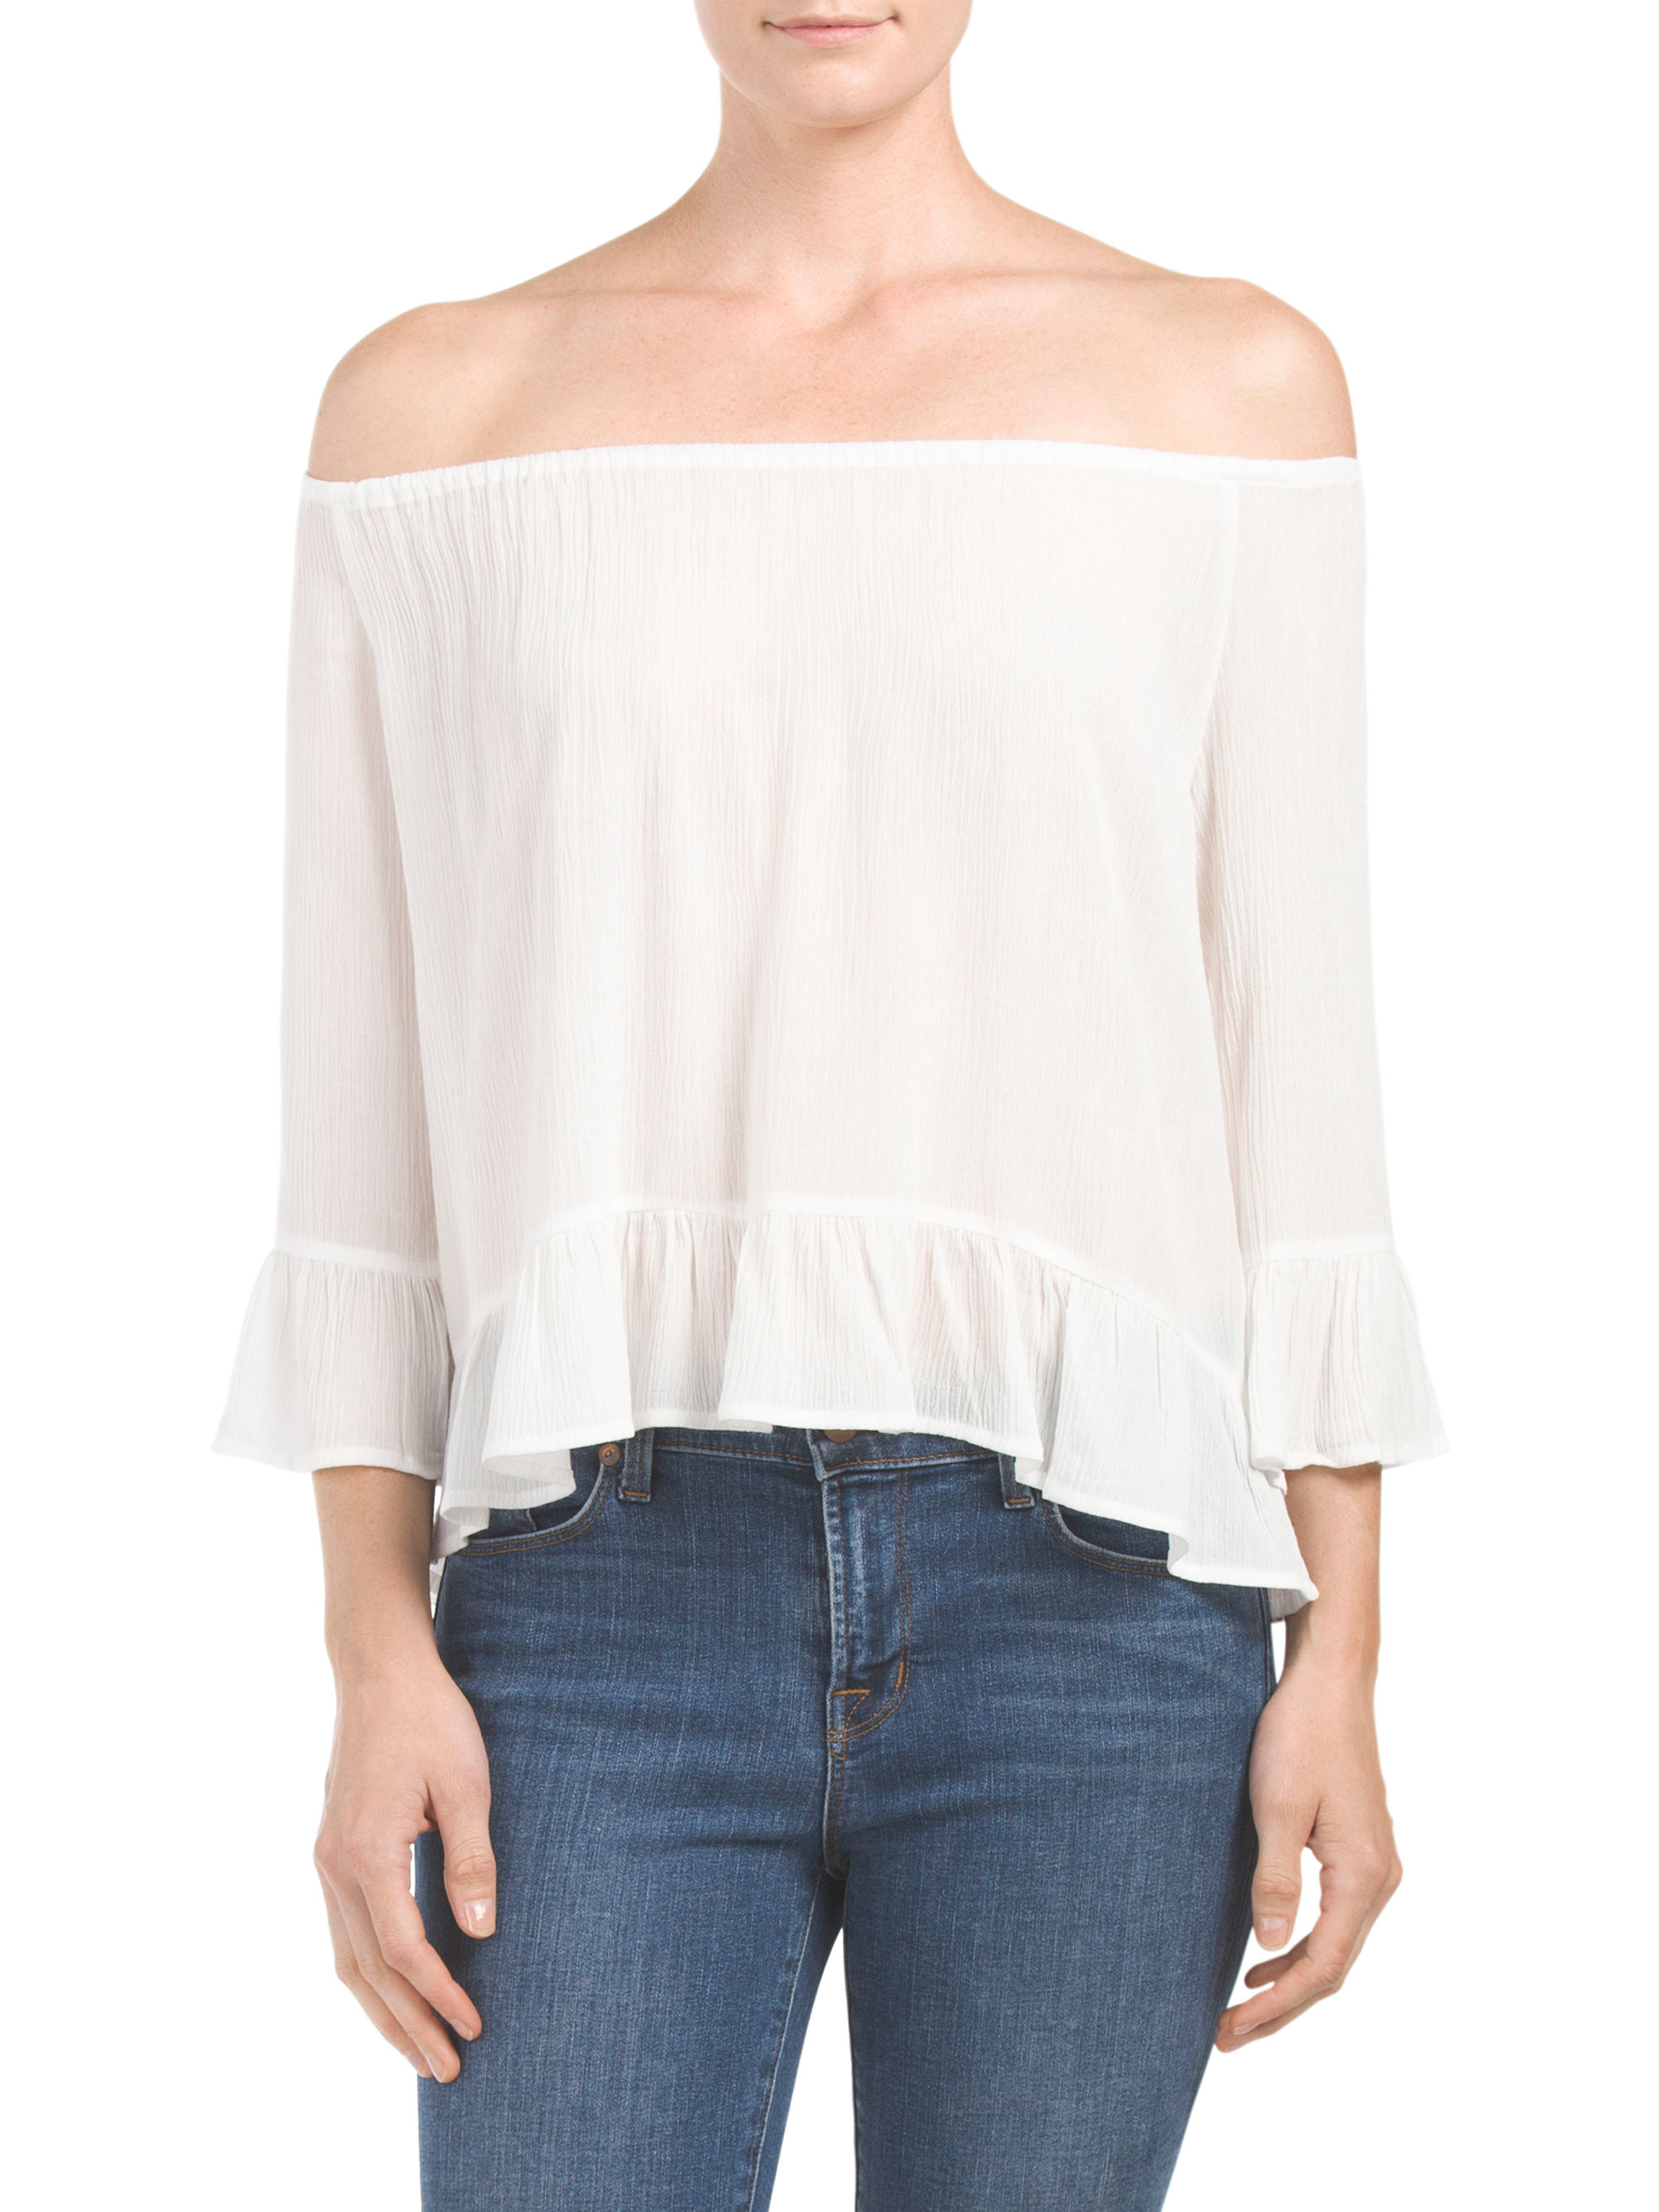 Tj maxx julia off the shoulder top in white lyst for Tj maxx t shirts